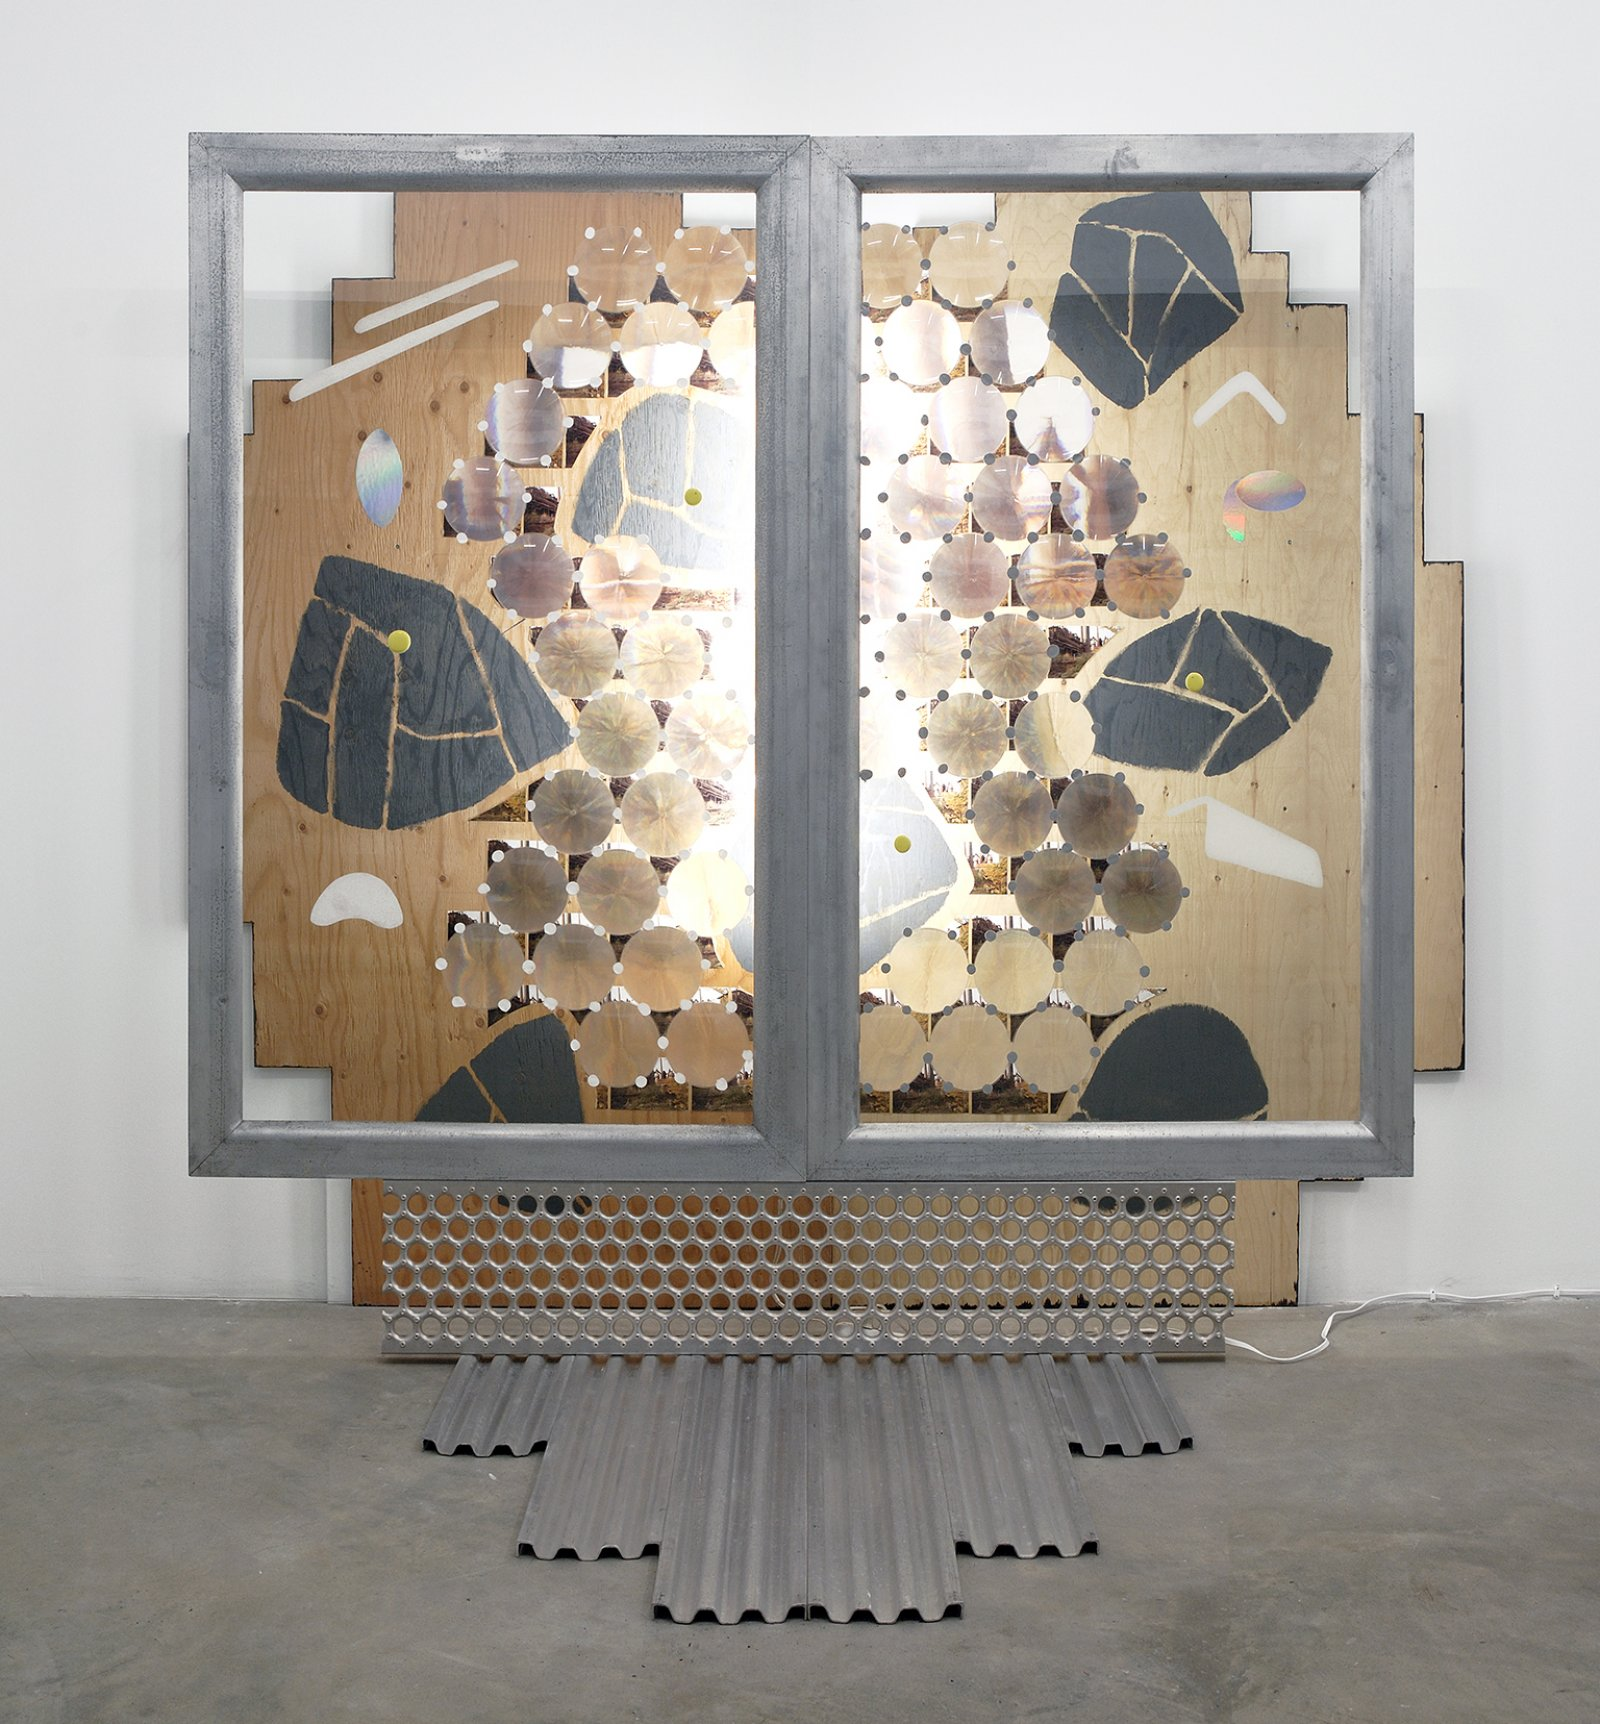 Jerry Pethick, Volklingen Scarab, 1995, aluminum, stainless steel, plywood, 79 photographs, 56 fresnel lenses, glass, fluorescent light fixture, spectrafoil, silicone, acrylic paint, 96 x 84 x 53 in. (244 x 213 x 135 cm)   by Jerry Pethick